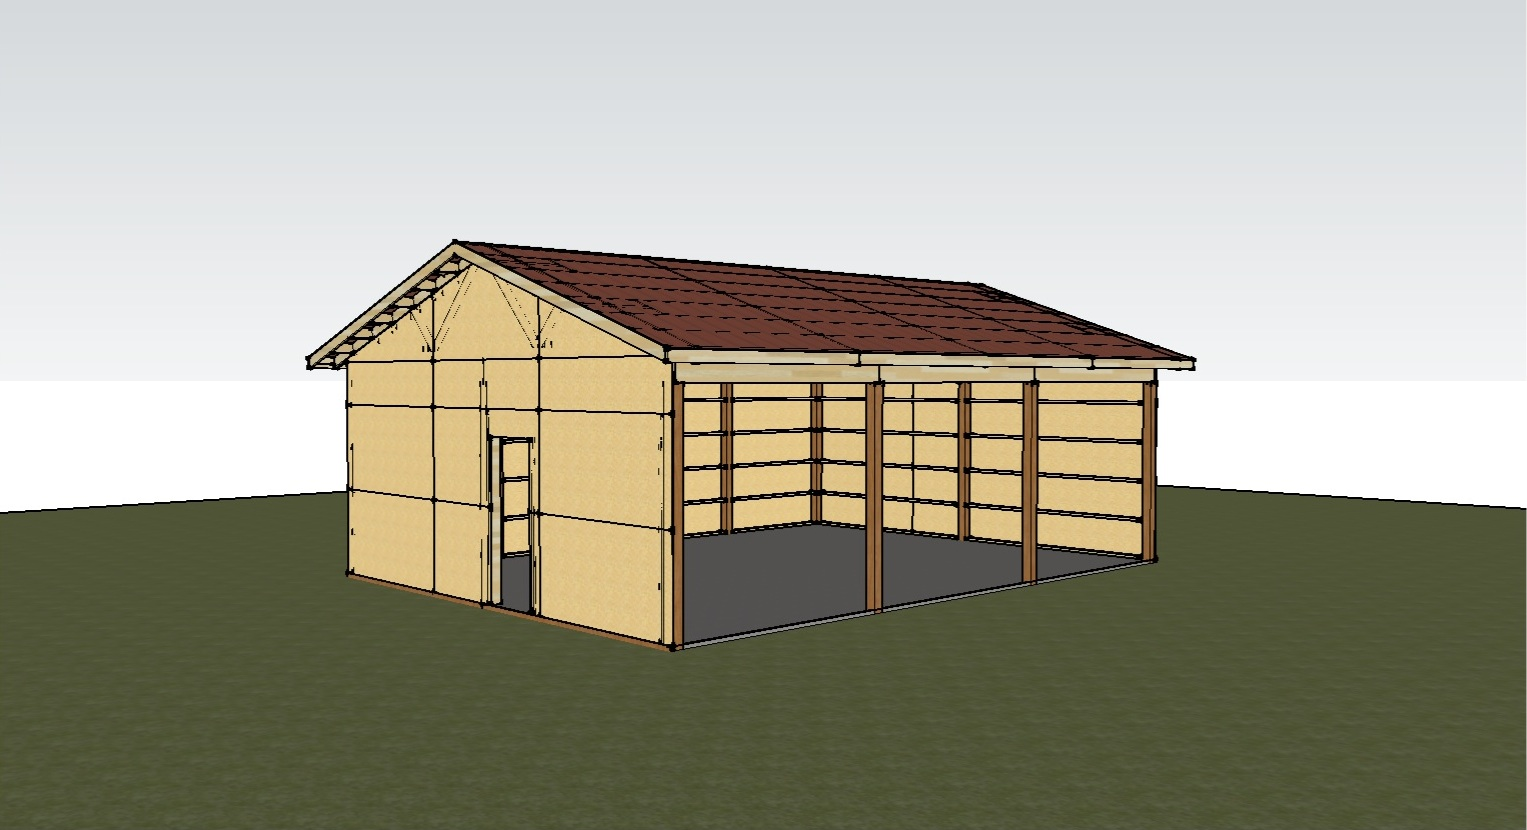 Pole barn plans and materials redneck diy for Small pole barn house plans